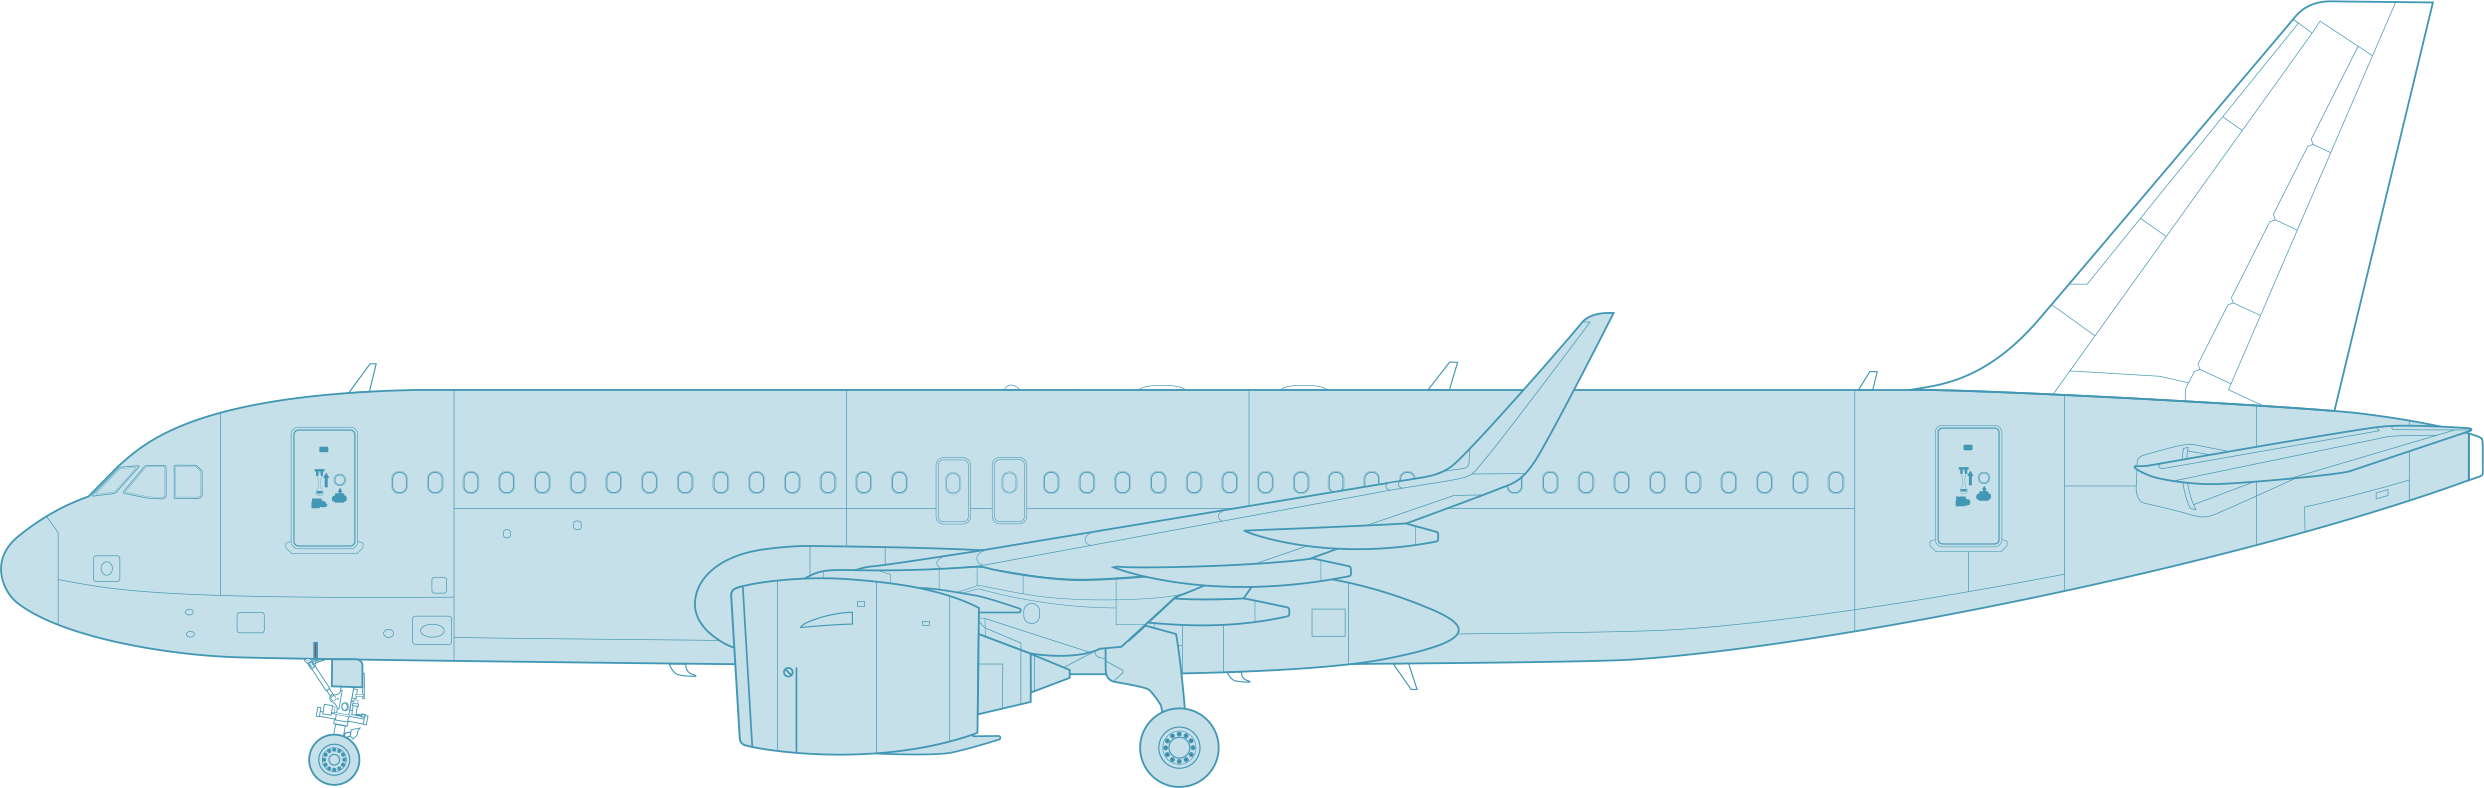 Aircraft Outer View